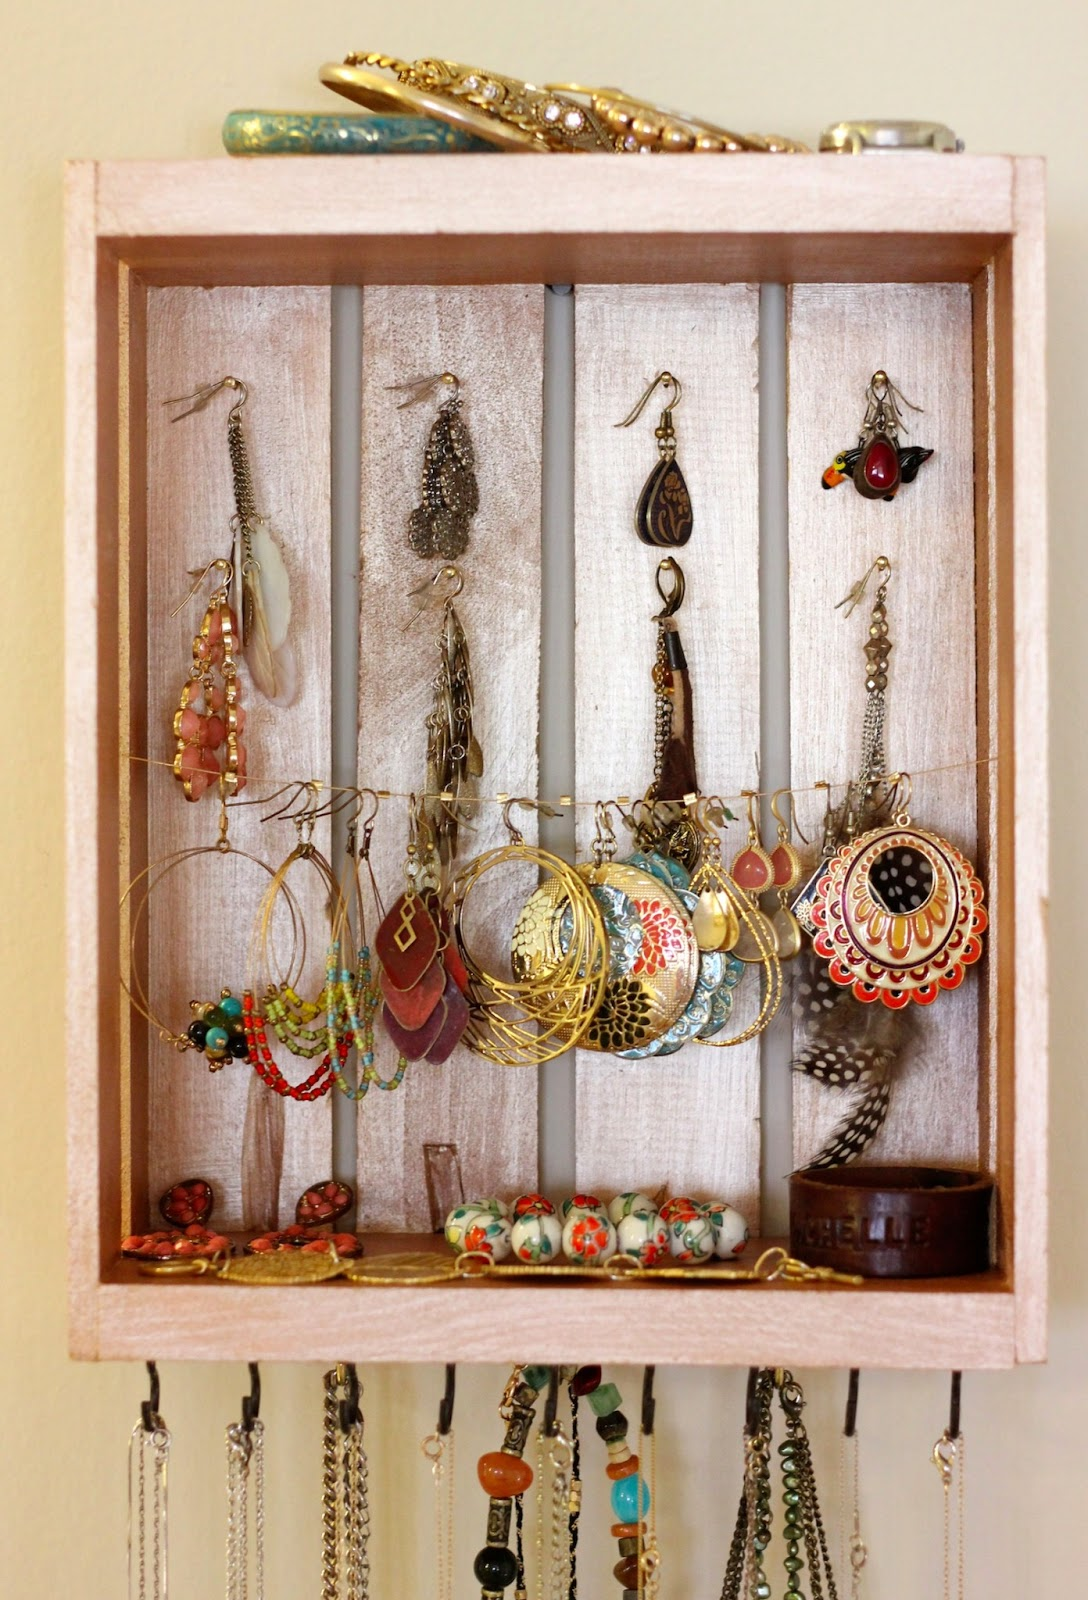 The Lucky Penny Blog: DIY: Jewelry Organizer